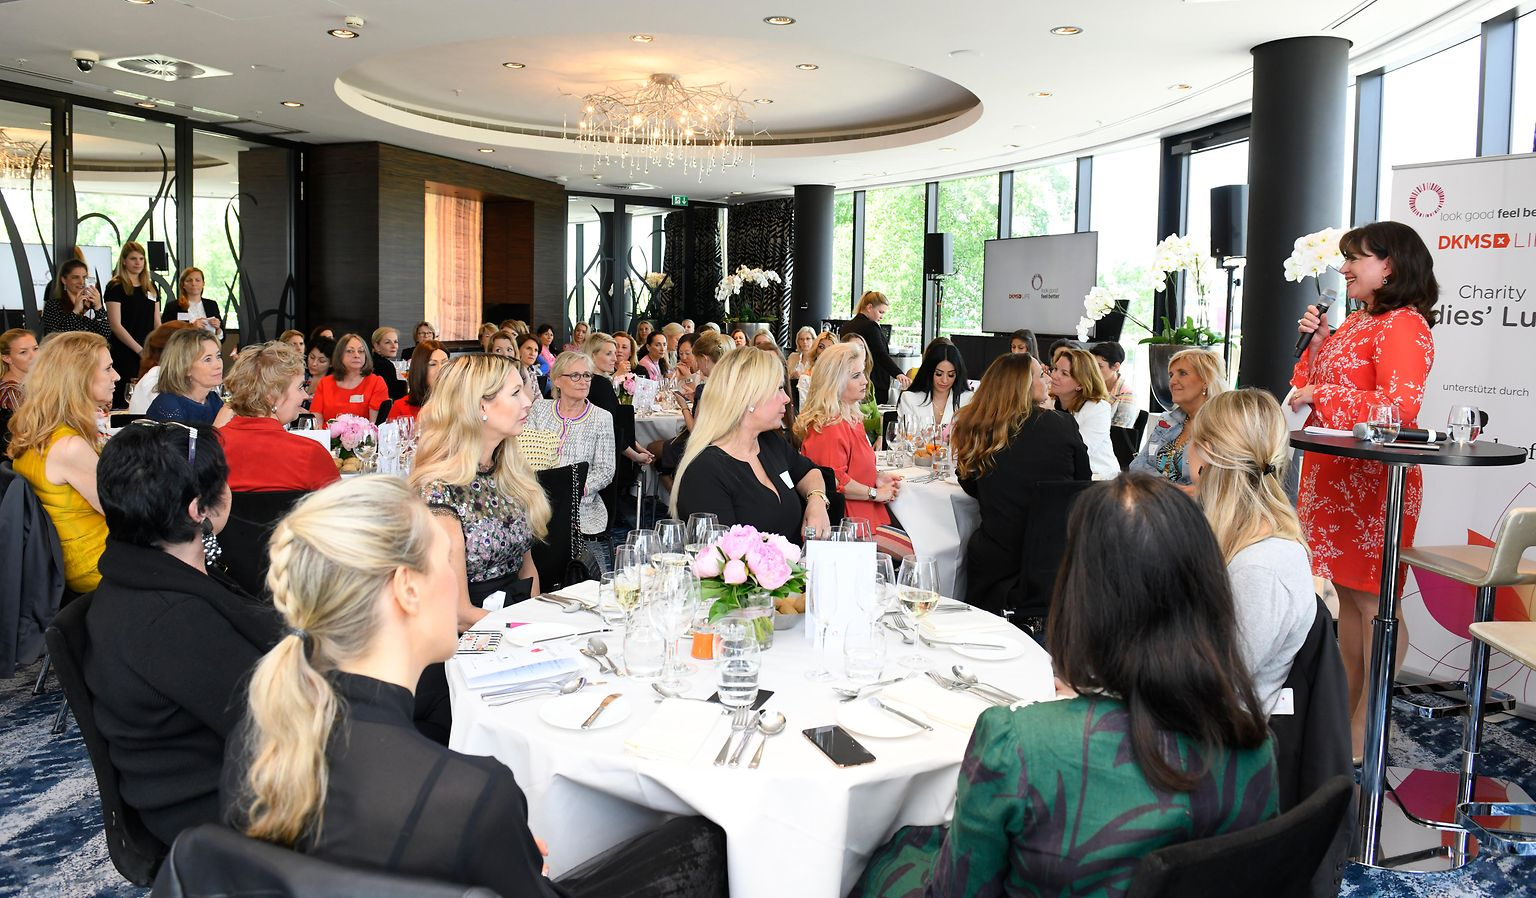 DKMS LIFE Charity Ladies Lunch